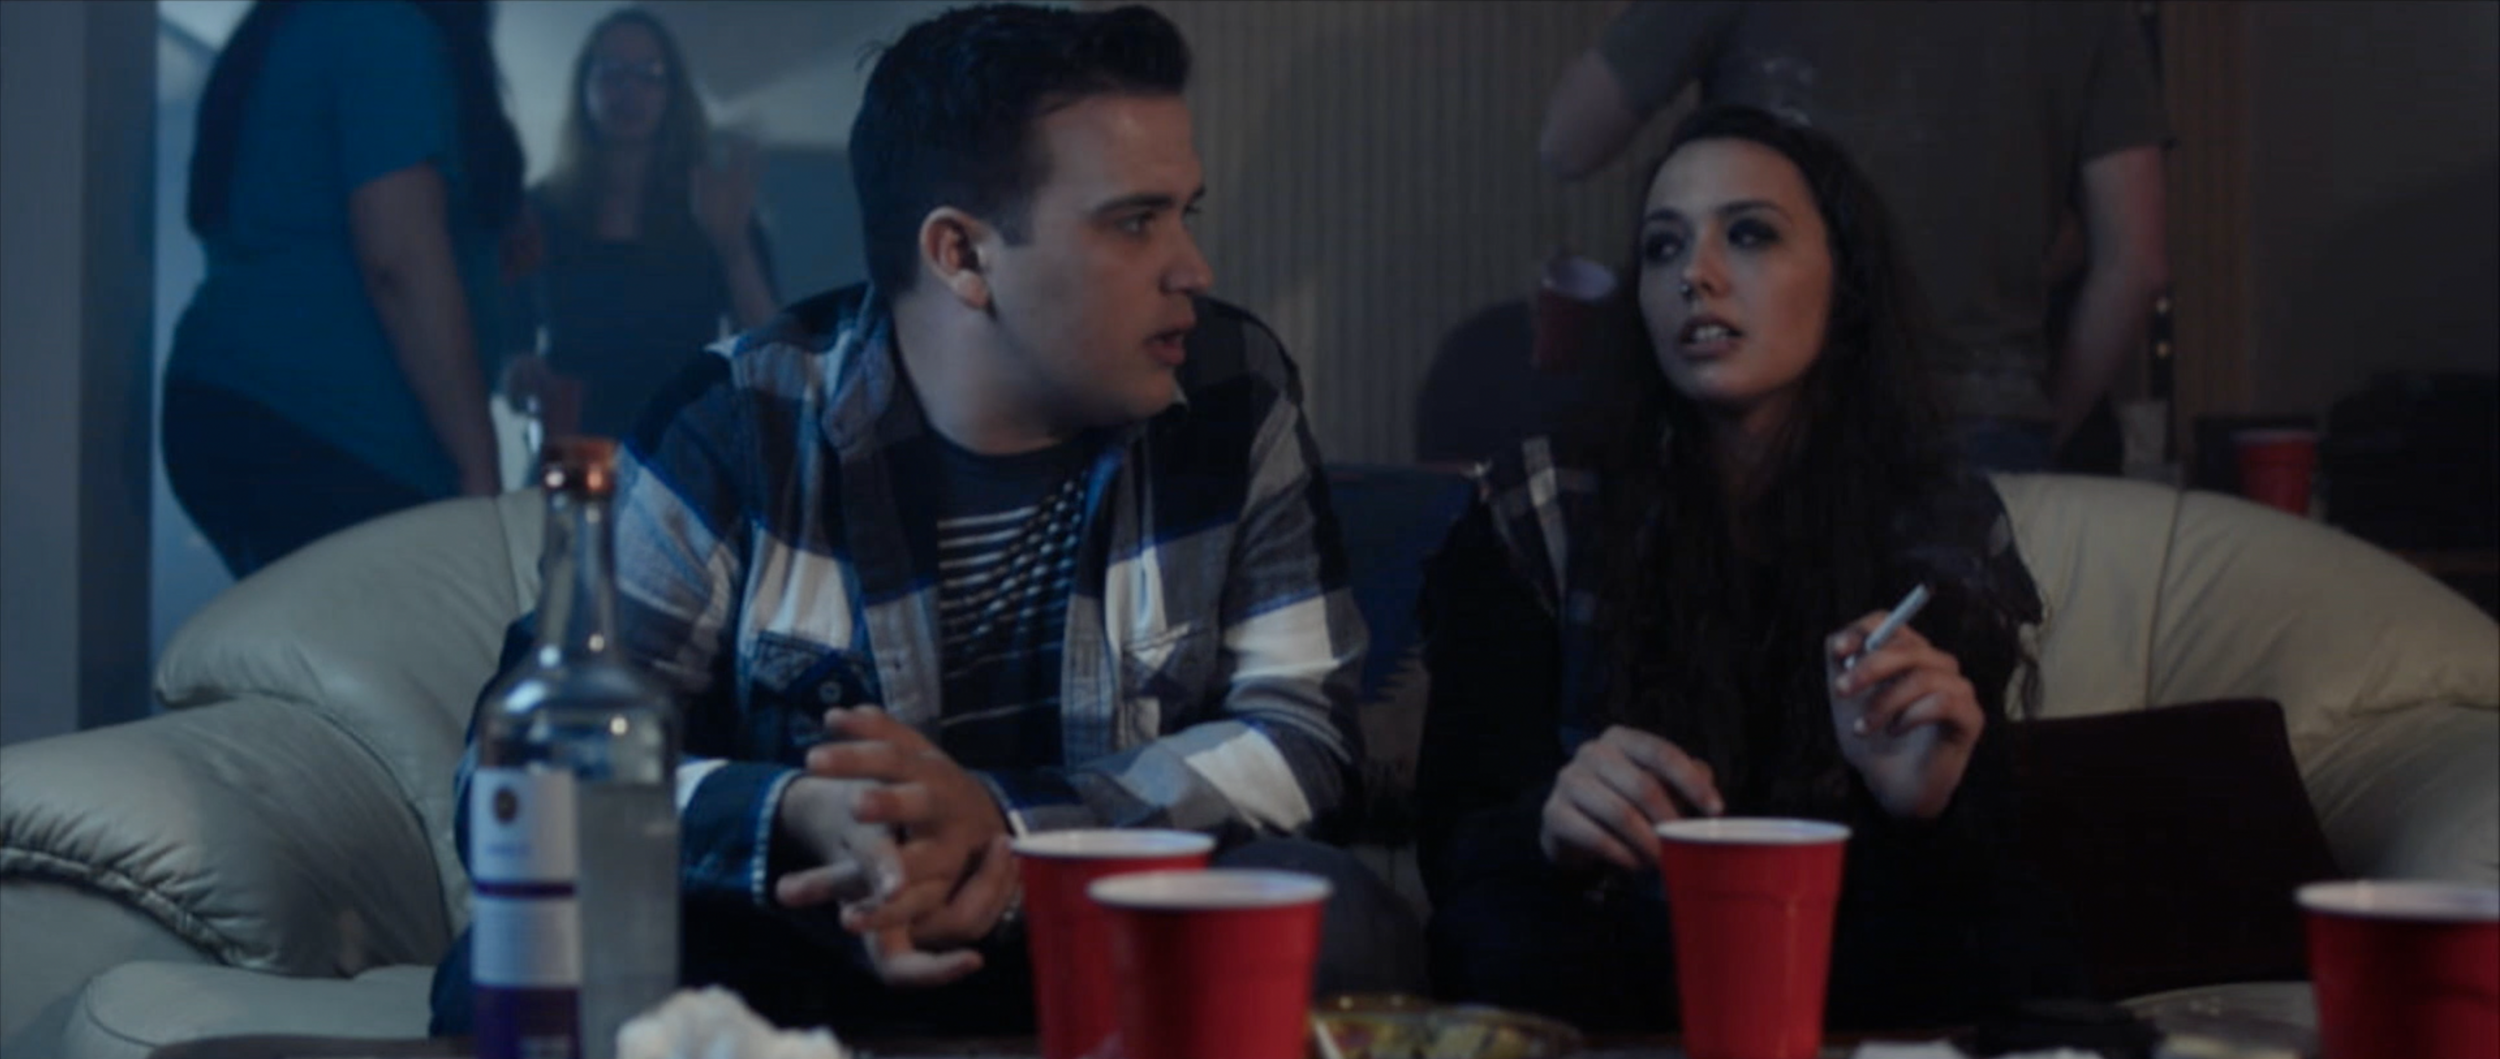 Kat Vallair (Claire Arble) introduces Eli Johnson (Nick Earl) to his new coping method in  Sincerely, Me.